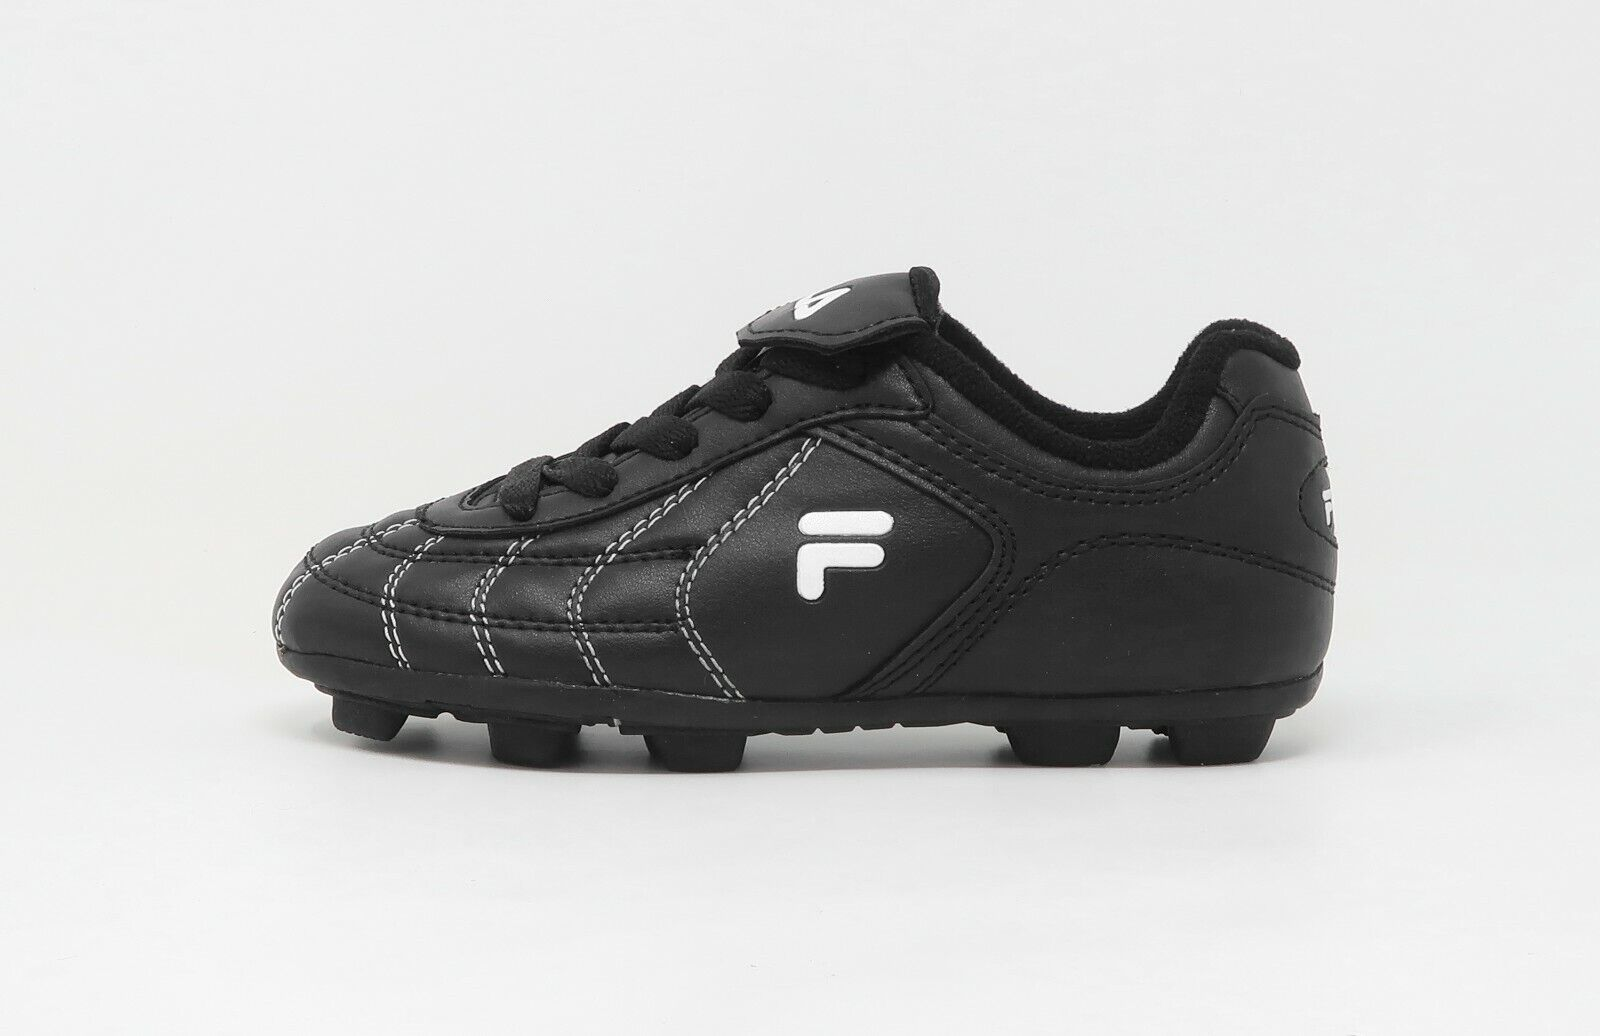 Fila Youths Girls Boys Soccer Shoes Cleats Black Synthetic L